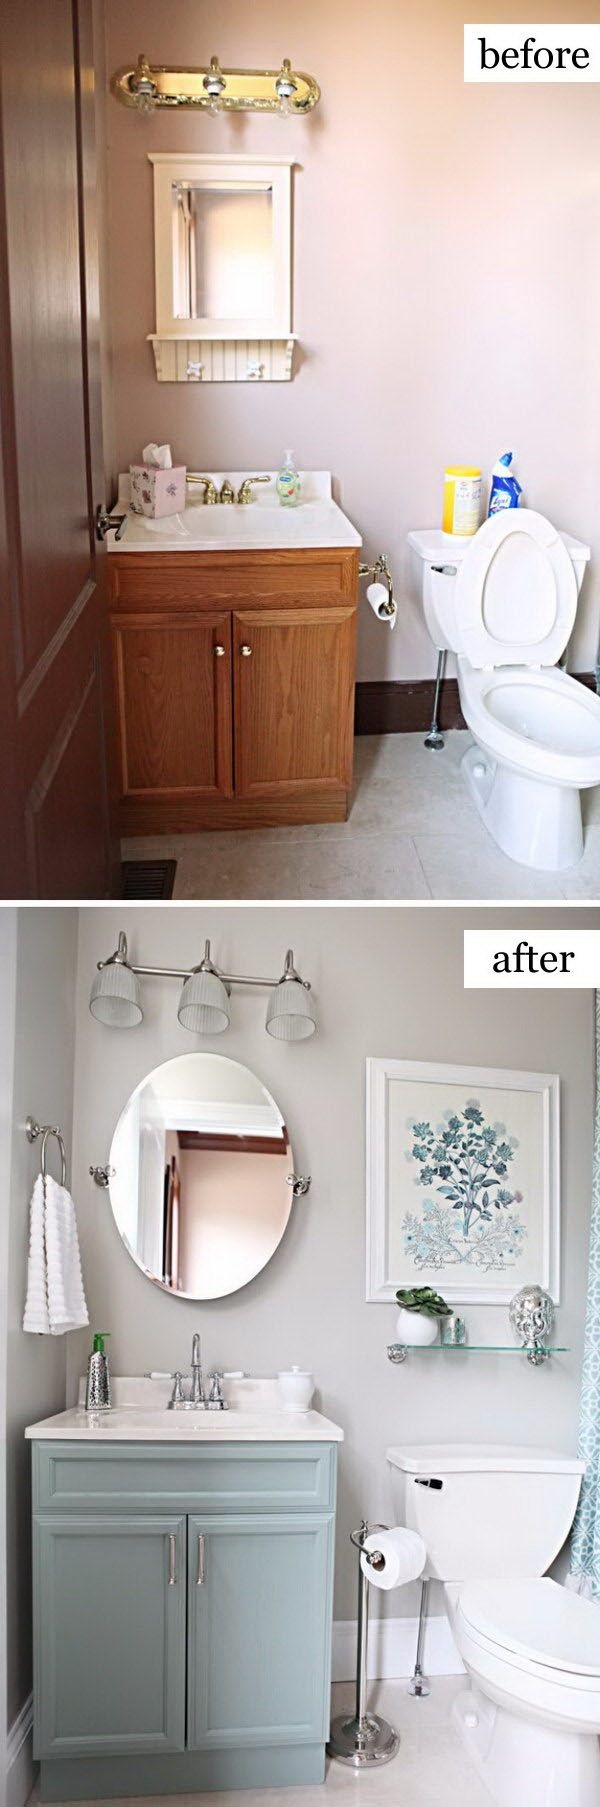 Typical Bathroom Renovation Cost Decor Images Design Inspiration